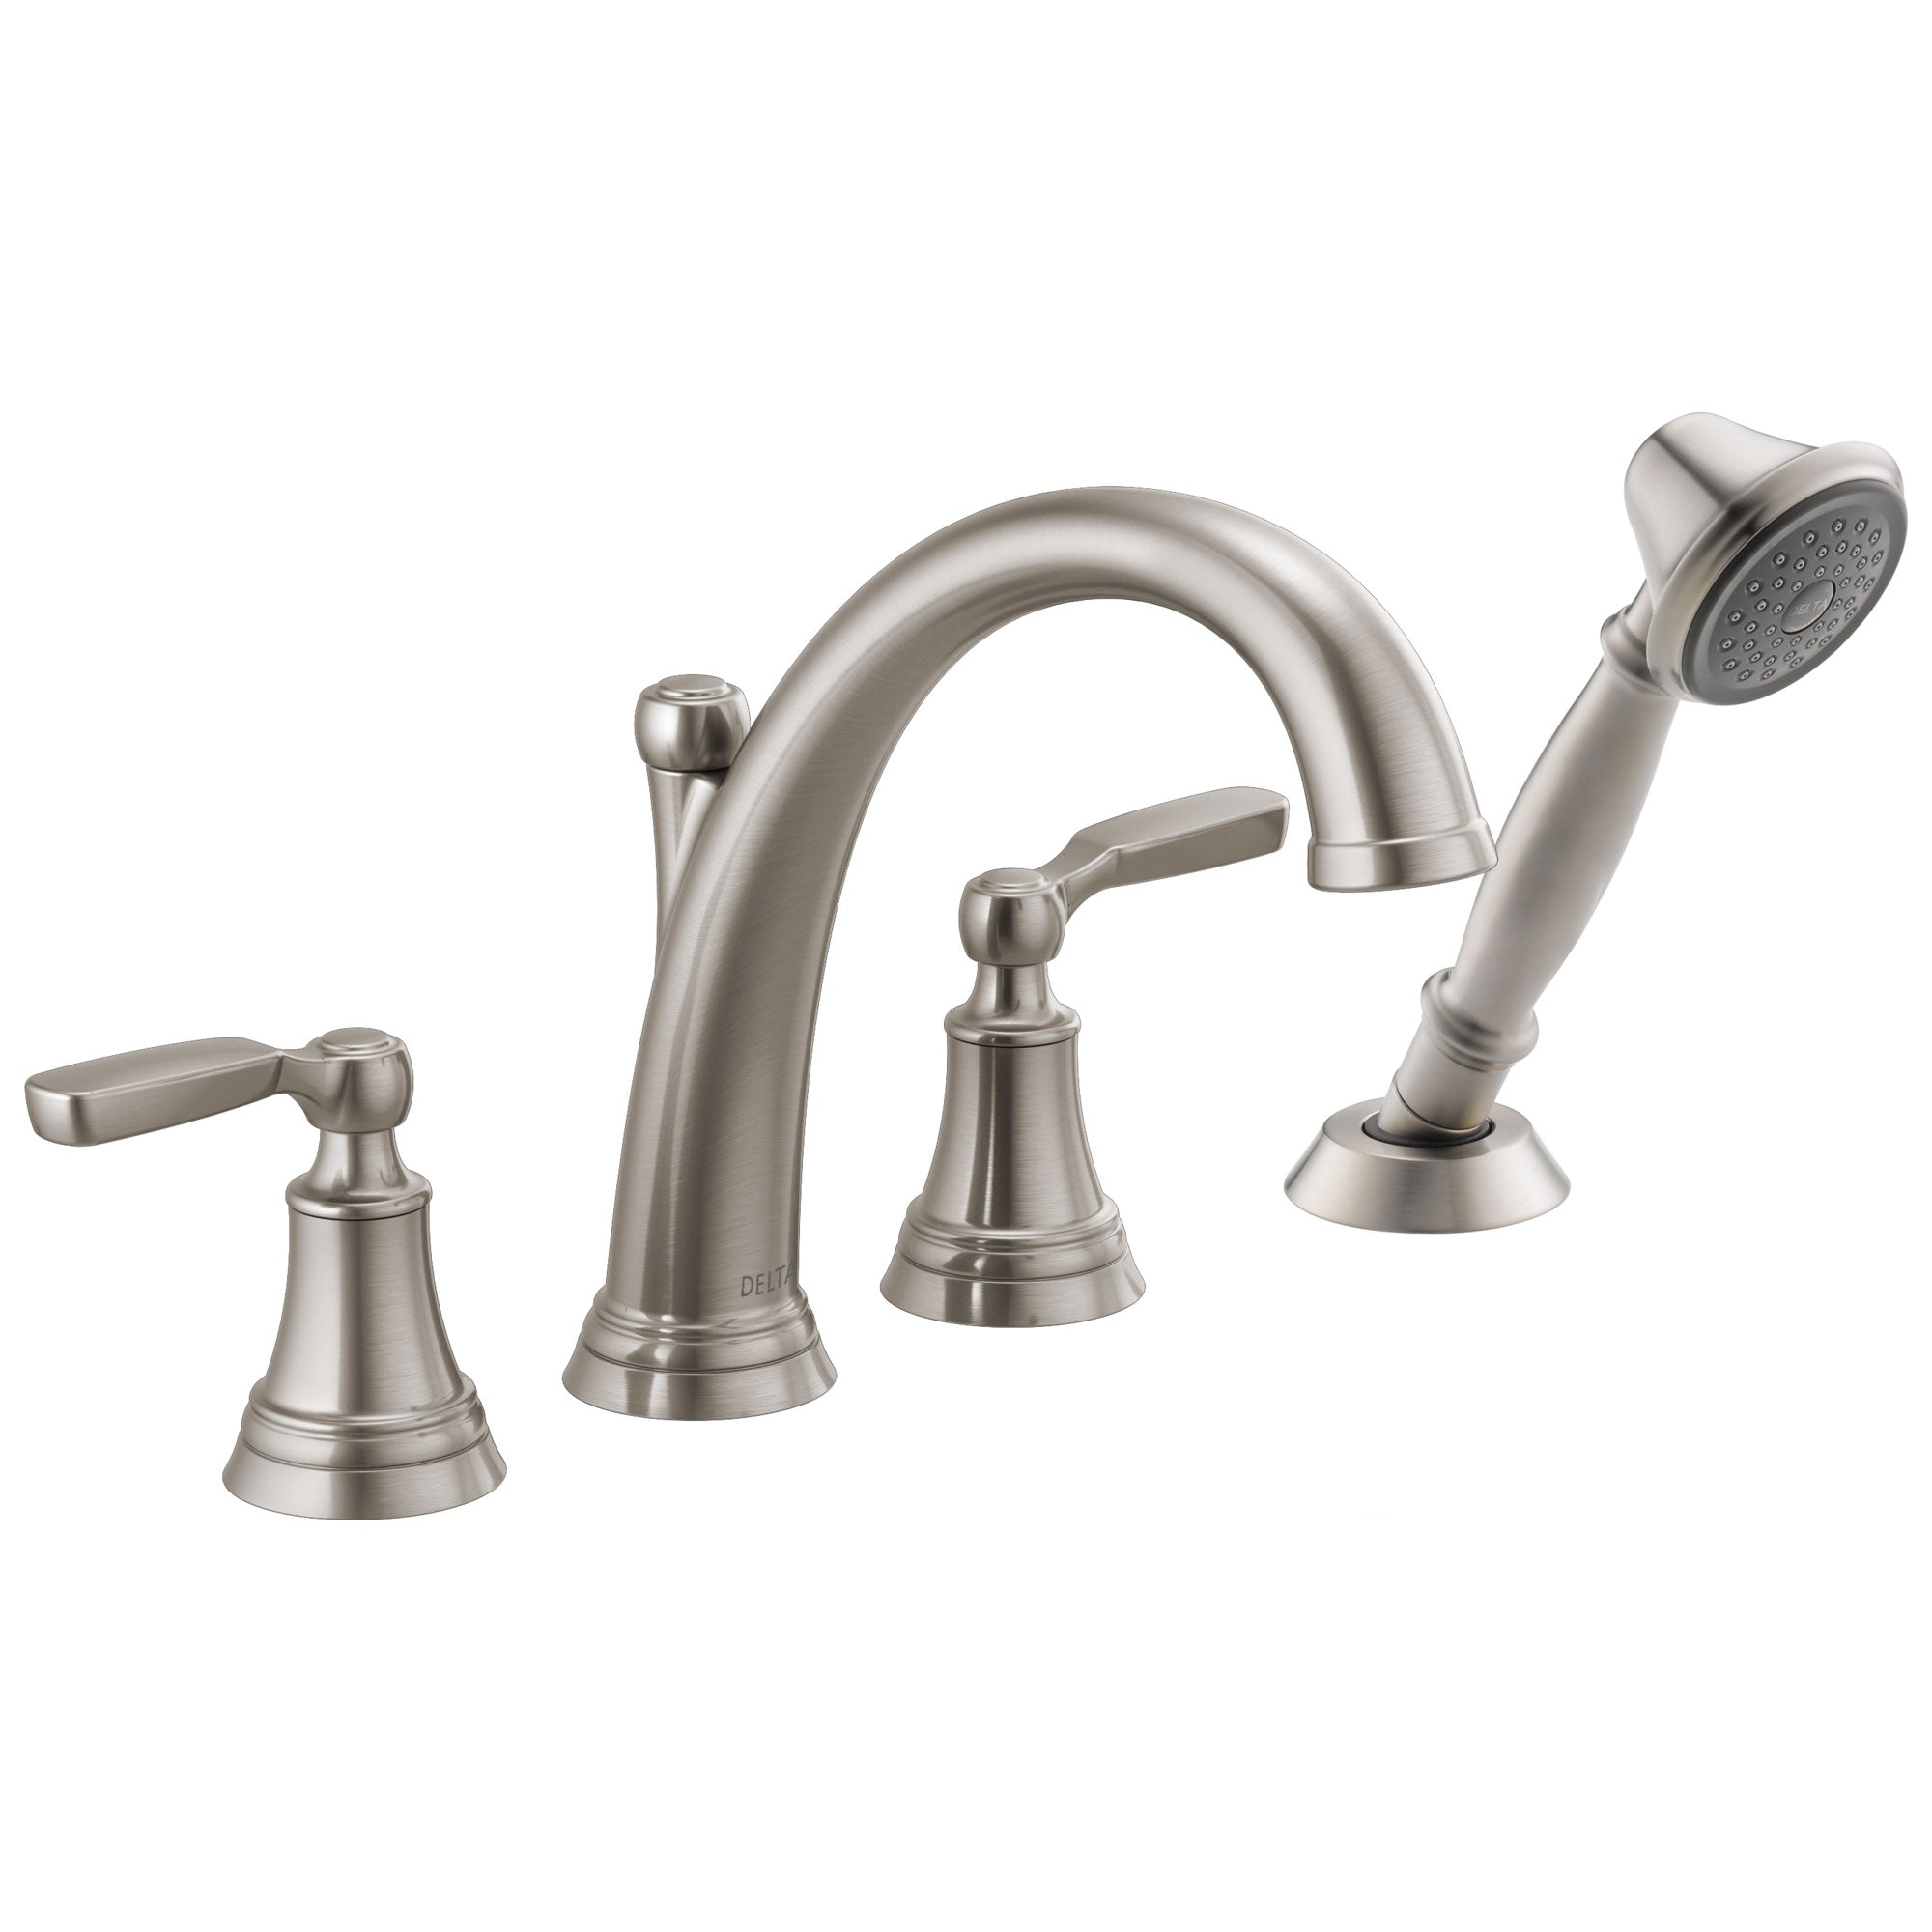 Delta Woodhurst Stainless Steel Finish 2 Handle Roman Tub Filler Faucet with Hand Shower Includes Rough-in Valve D3052V